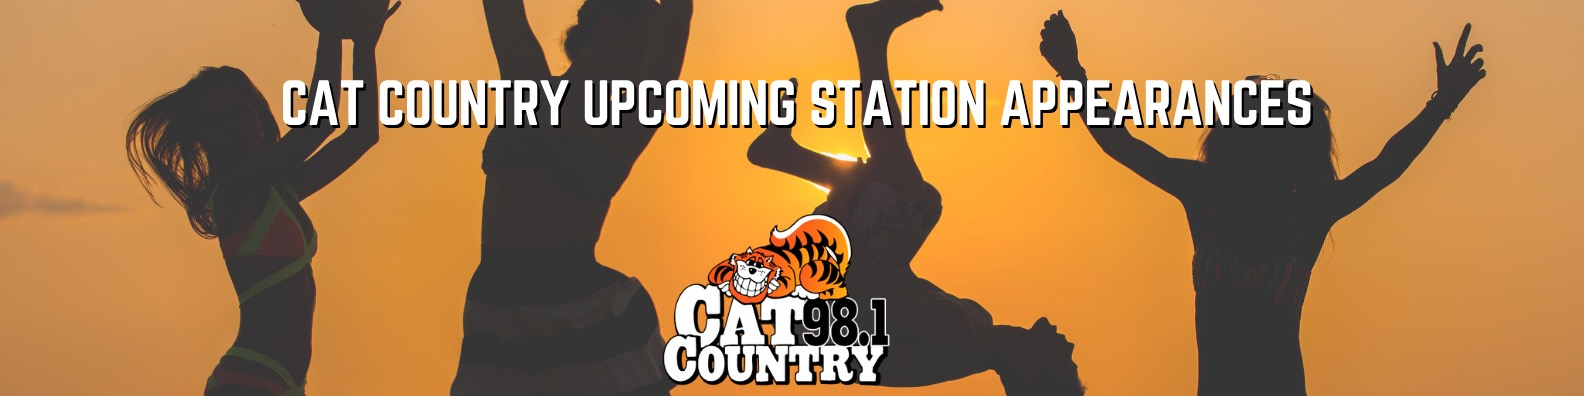 Upcoming Cat Country 98.1 Station Appearances